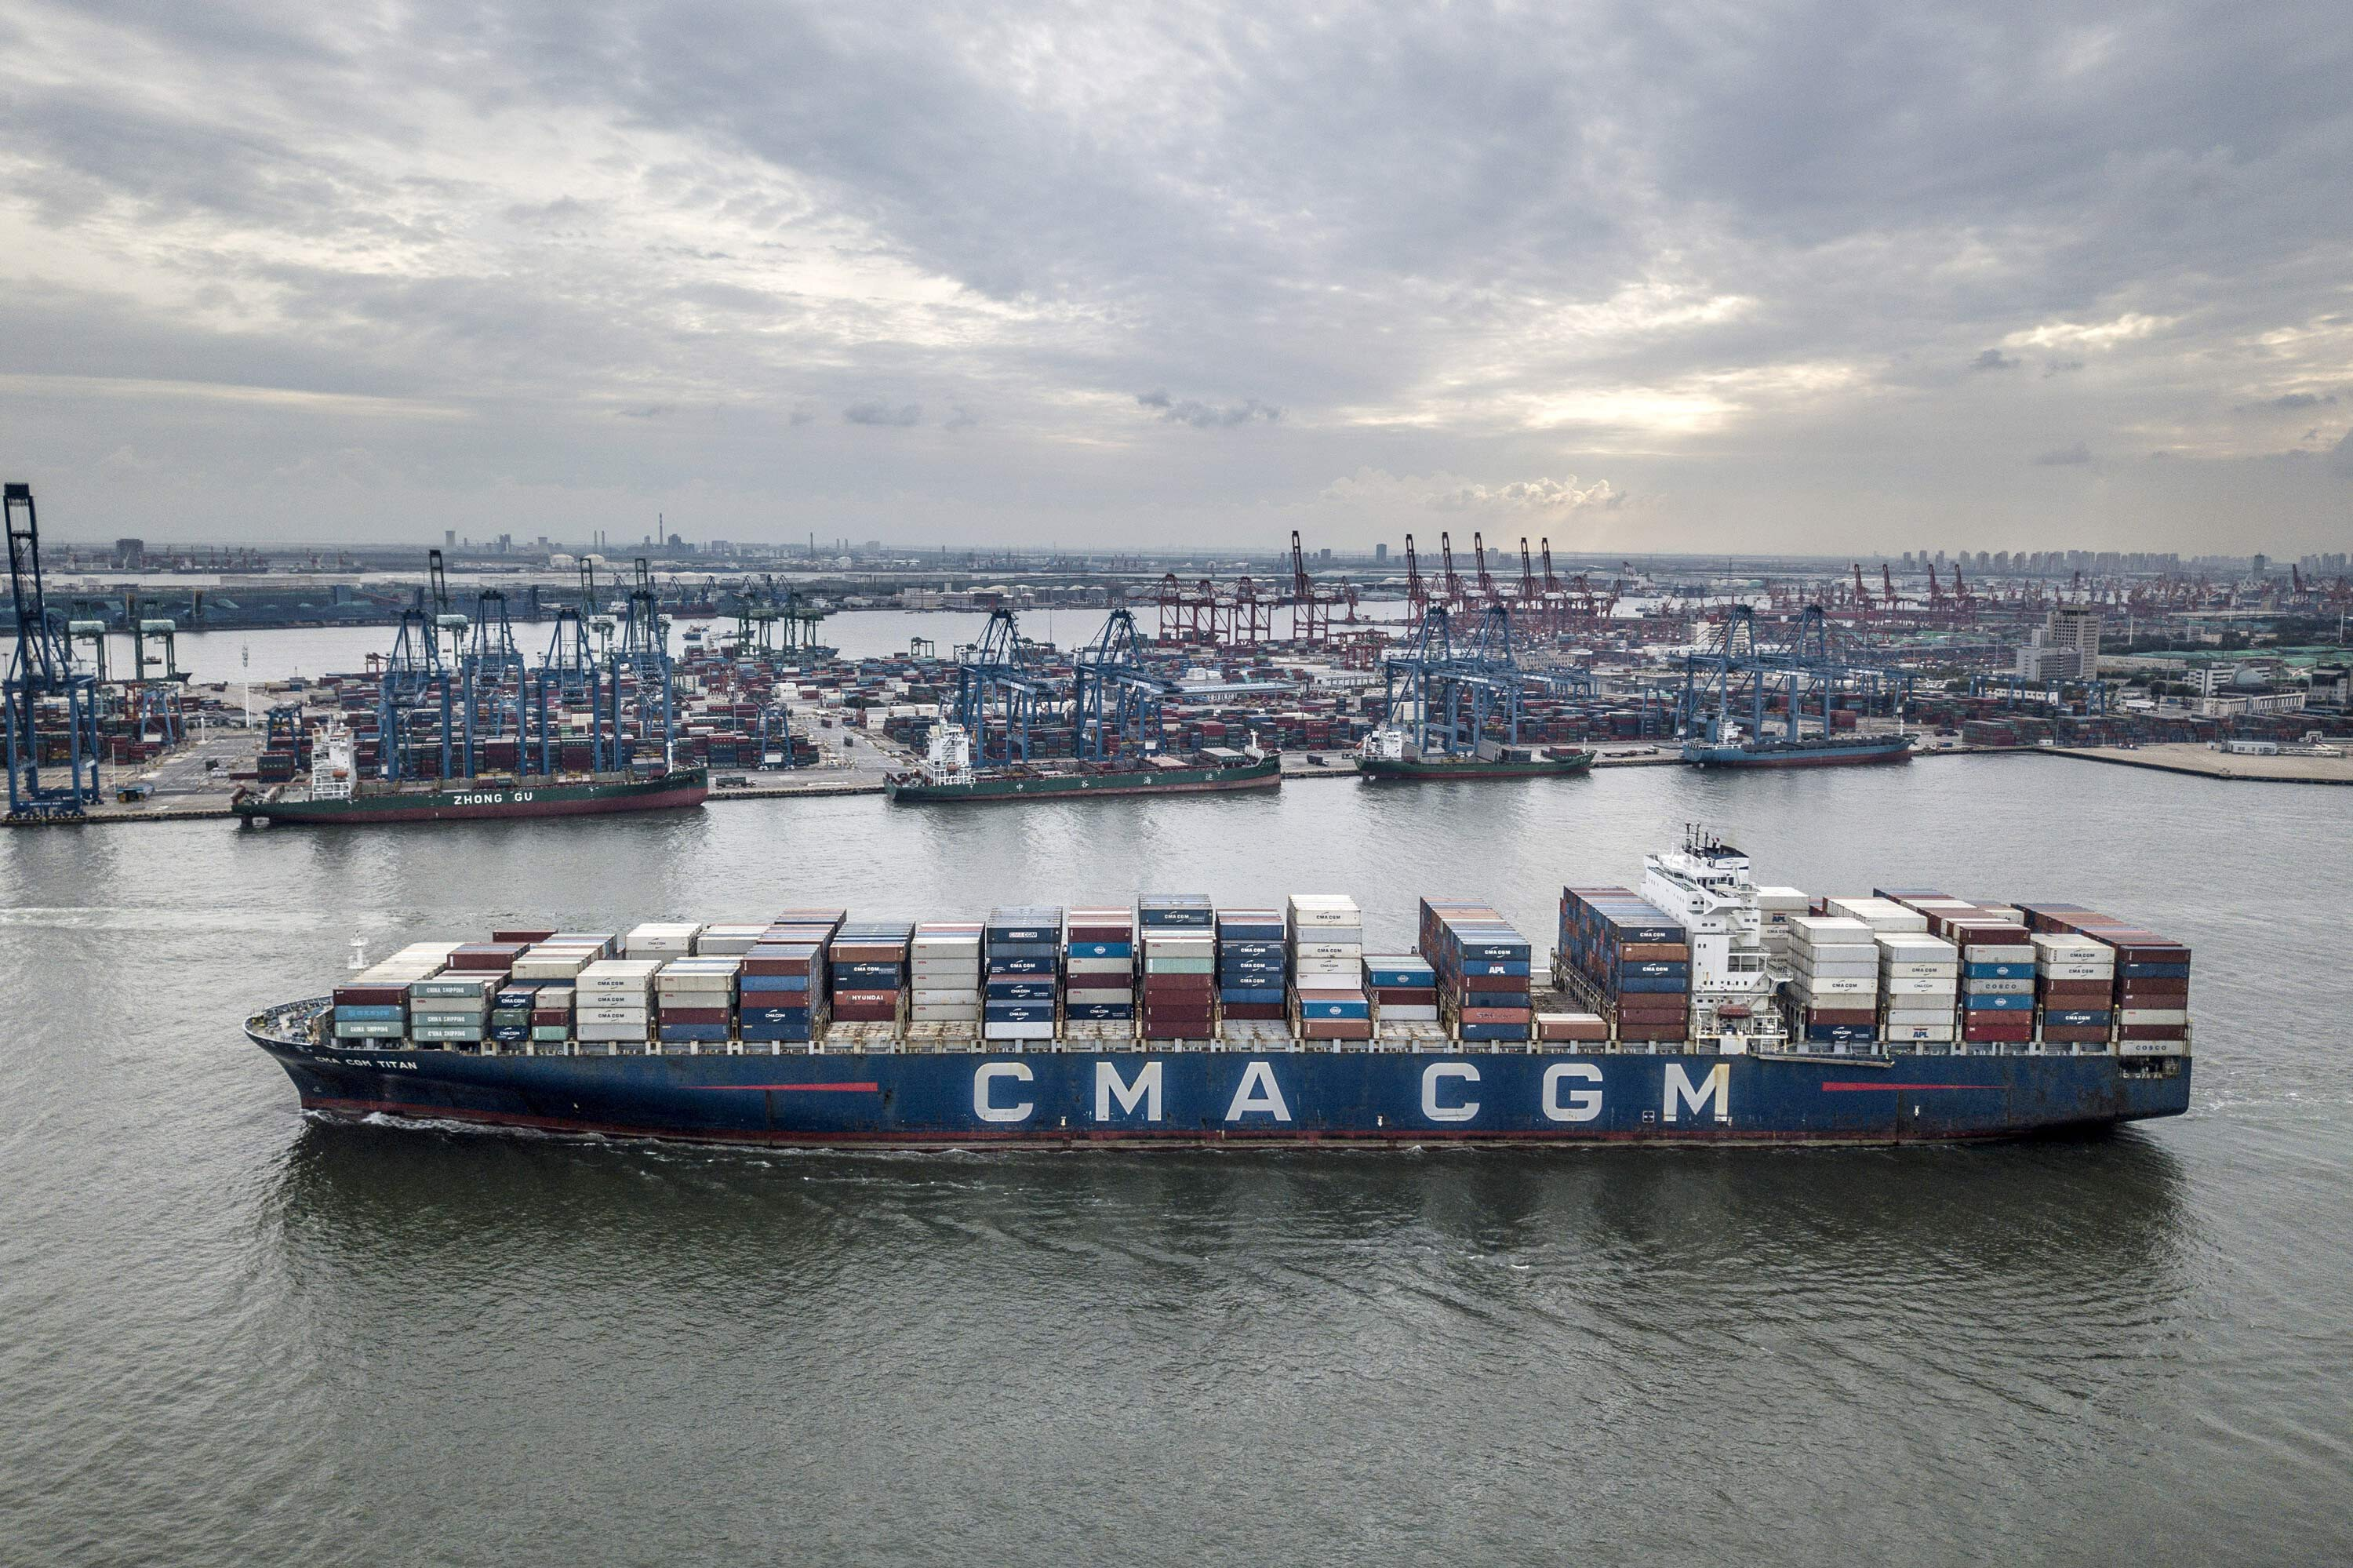 China's trade hit record levels last month despite the global shipping crisis